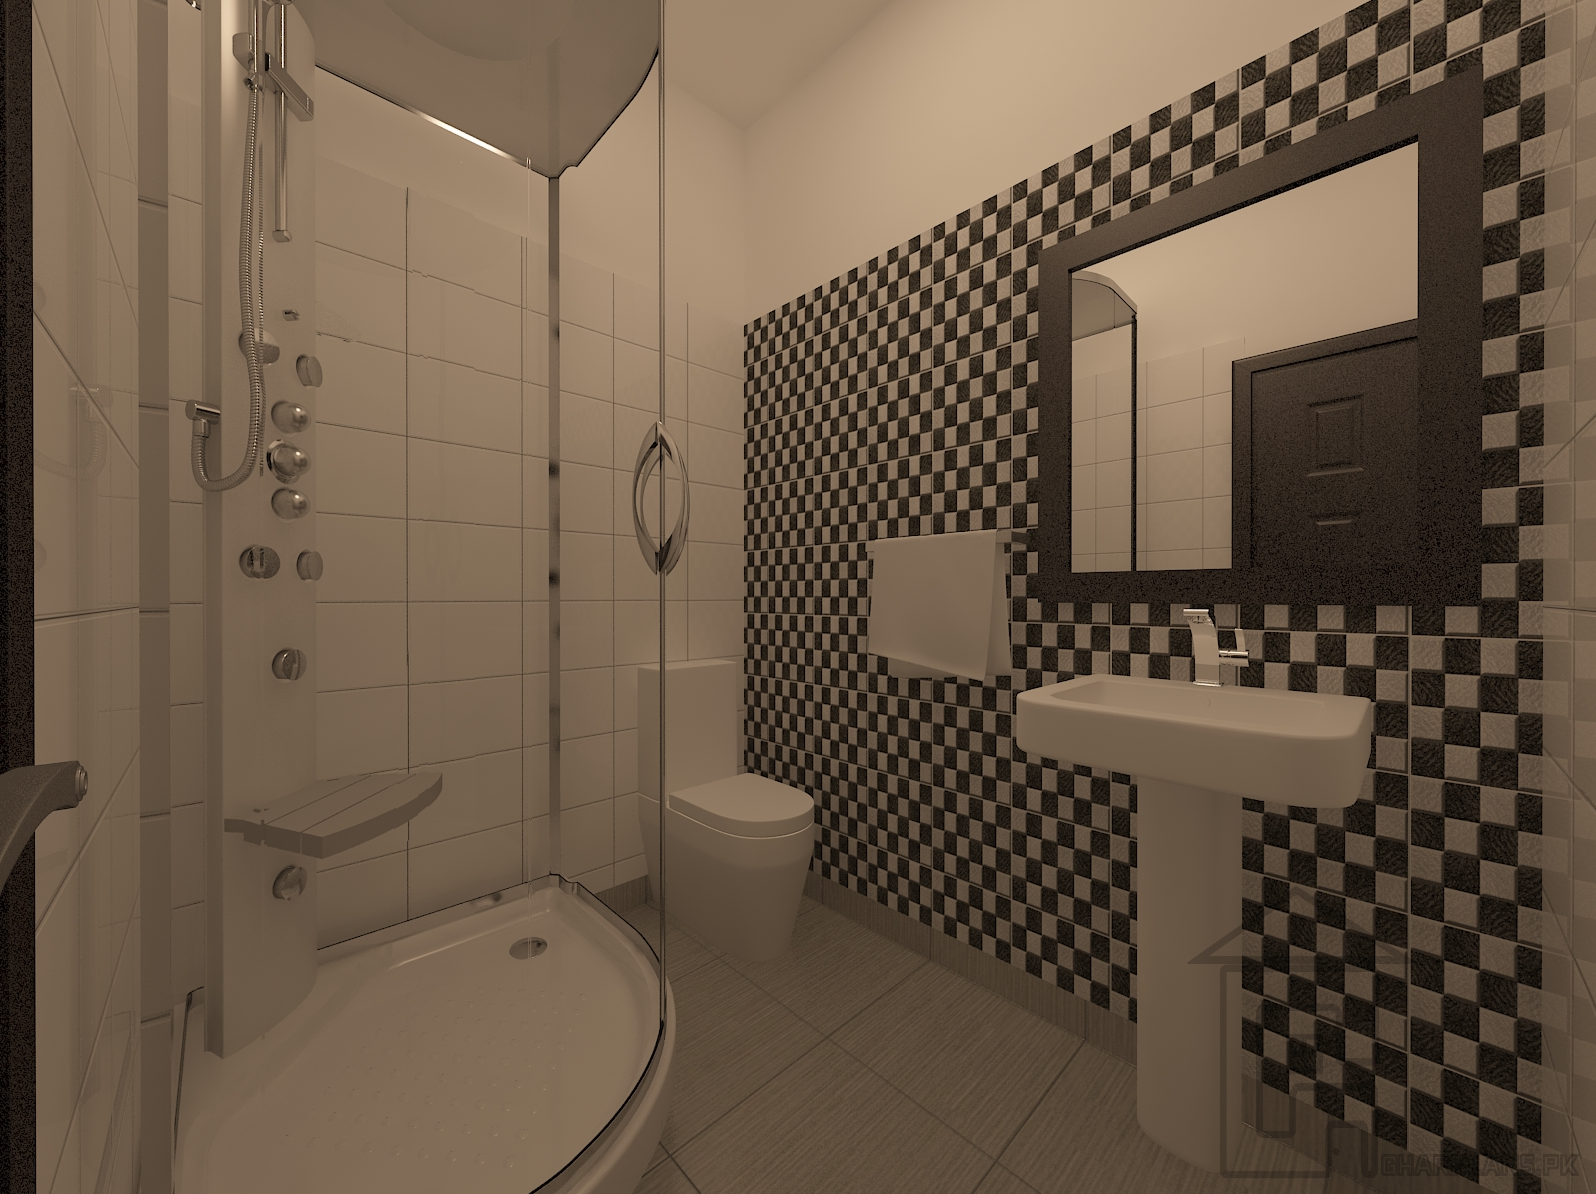 beautiful bathroom design in pakistan a really beautiful bathroombeautiful bathroom design in pakistan a really beautiful bathroom design constructed in islamabad, pakistan the only disadvantage of this bathroom is that